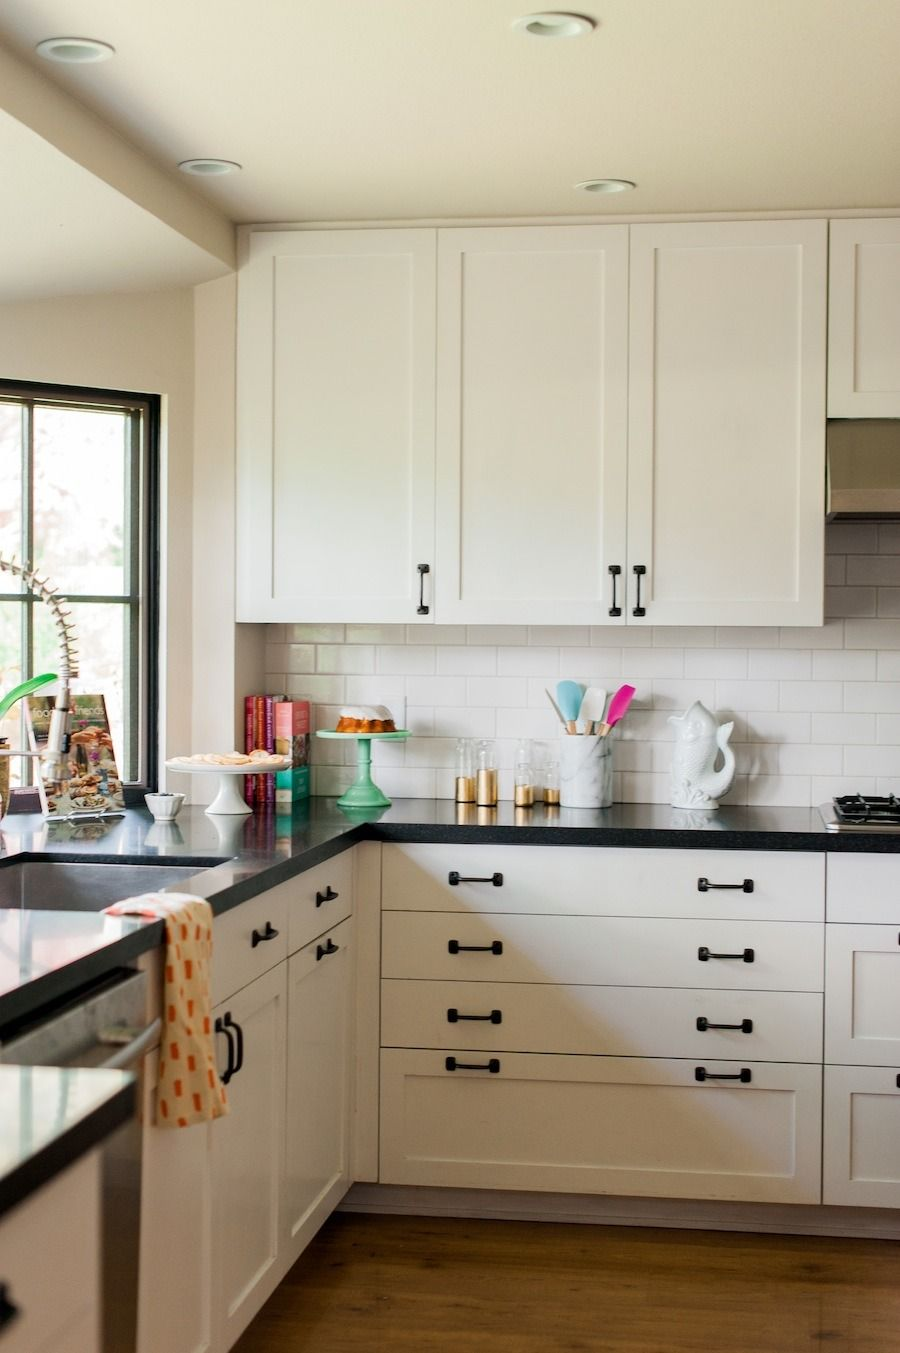 Caitlin Wilson Home Tour Black Countertops Kitchen Black Counter White Kitchen Cabinets